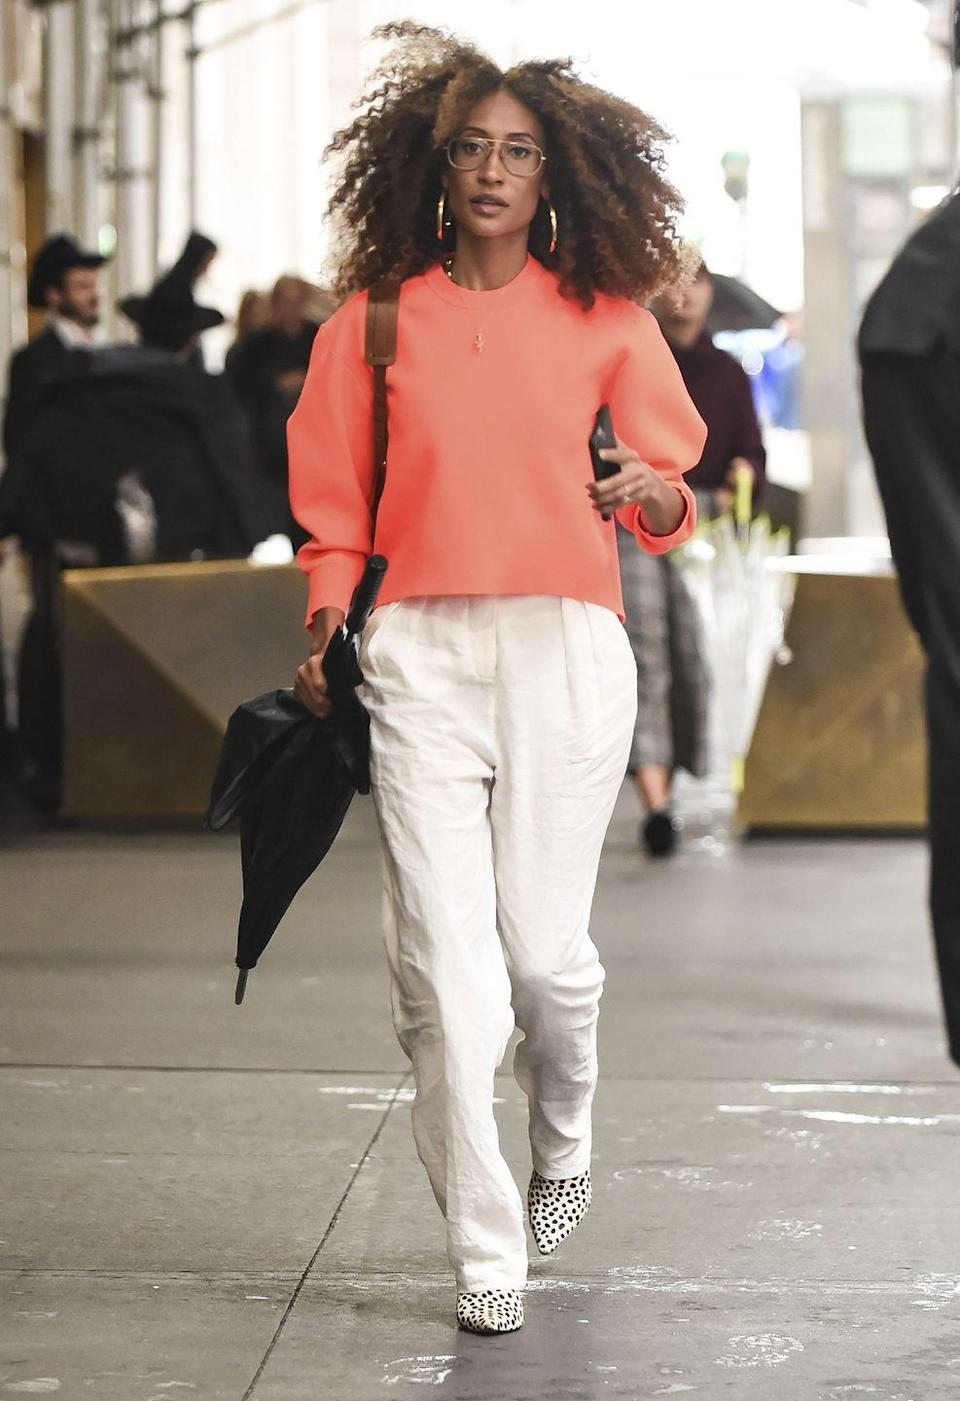 """<p><a href=""""https://www.seventeen.com/fashion/g27155530/how-to-wear-all-white/"""" rel=""""nofollow noopener"""" target=""""_blank"""" data-ylk=""""slk:White staple pieces"""" class=""""link rapid-noclick-resp"""">White staple pieces</a> have a longer street life than just the summertime. Pair your favorite pieces with fall trends (this year, neons and leopard print) to keep them in season.<br><br></p>"""